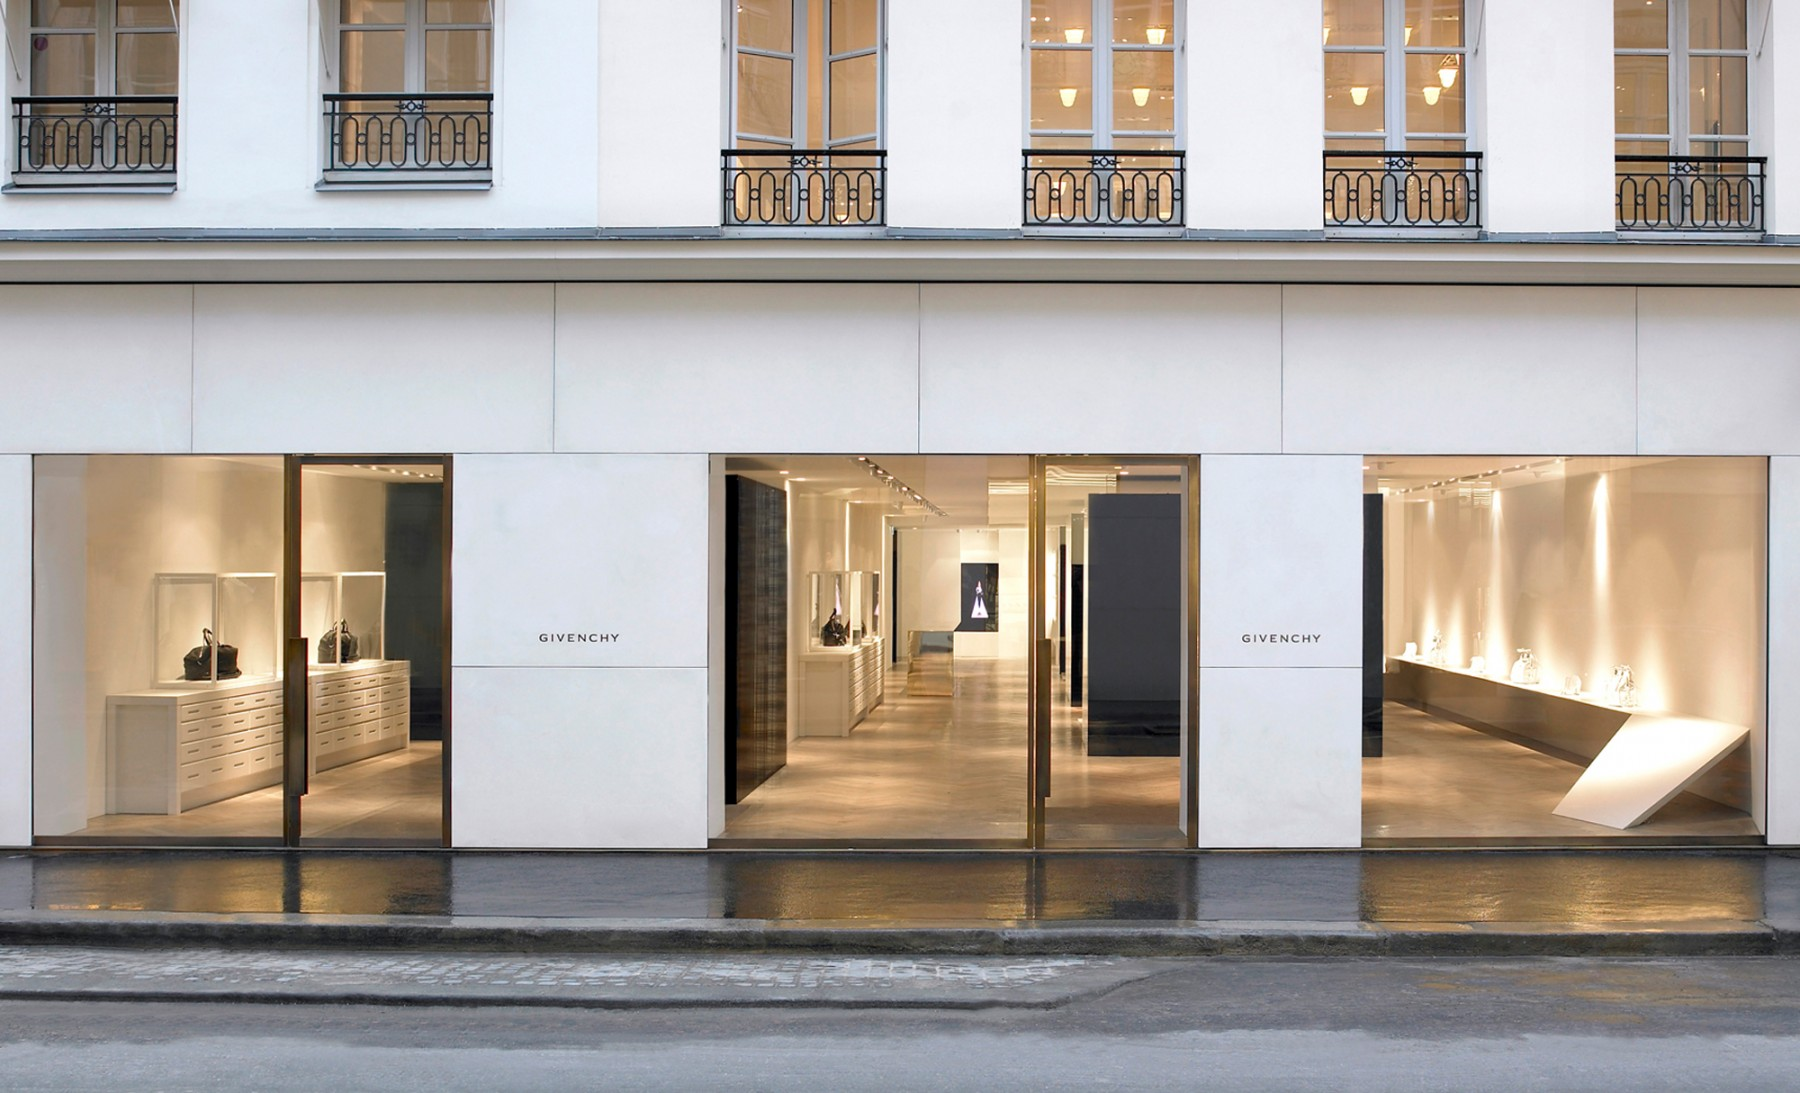 Givenchy-Paris-boutique-designer-fashion-retail-Jamie-Fobert-Architects-shop-facade-2-case-study